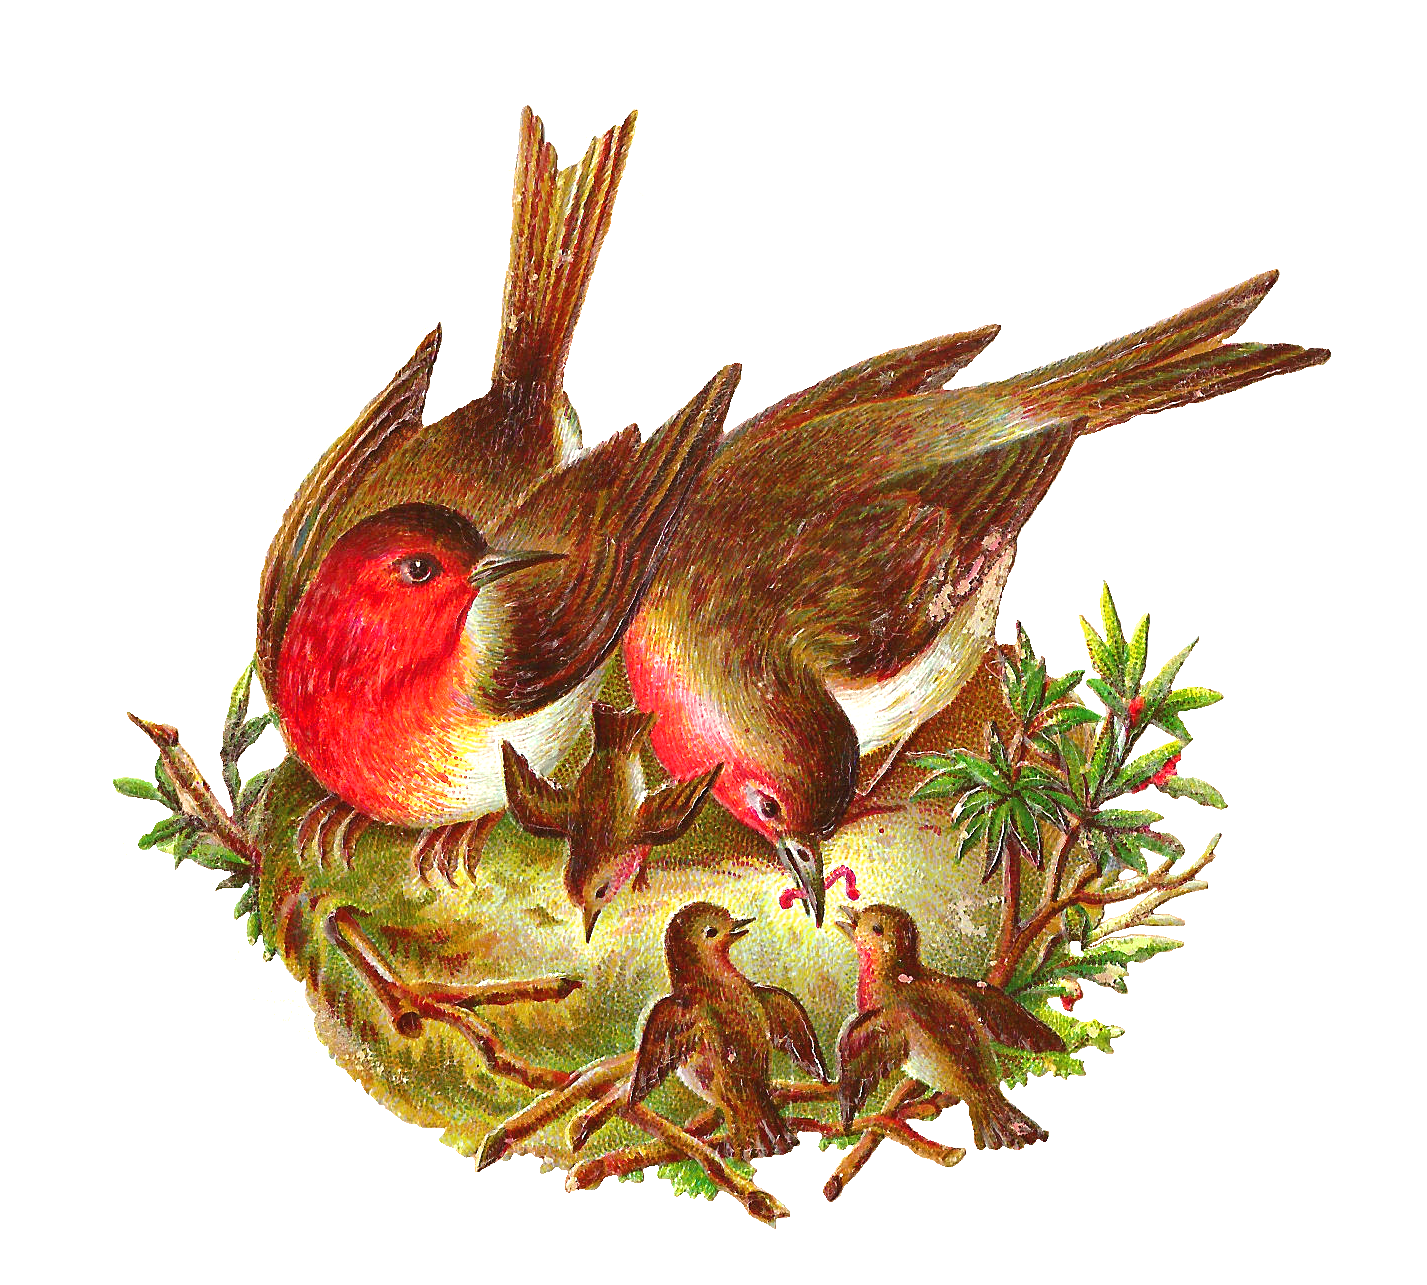 Antique images free graphic. Nest clipart bird feed